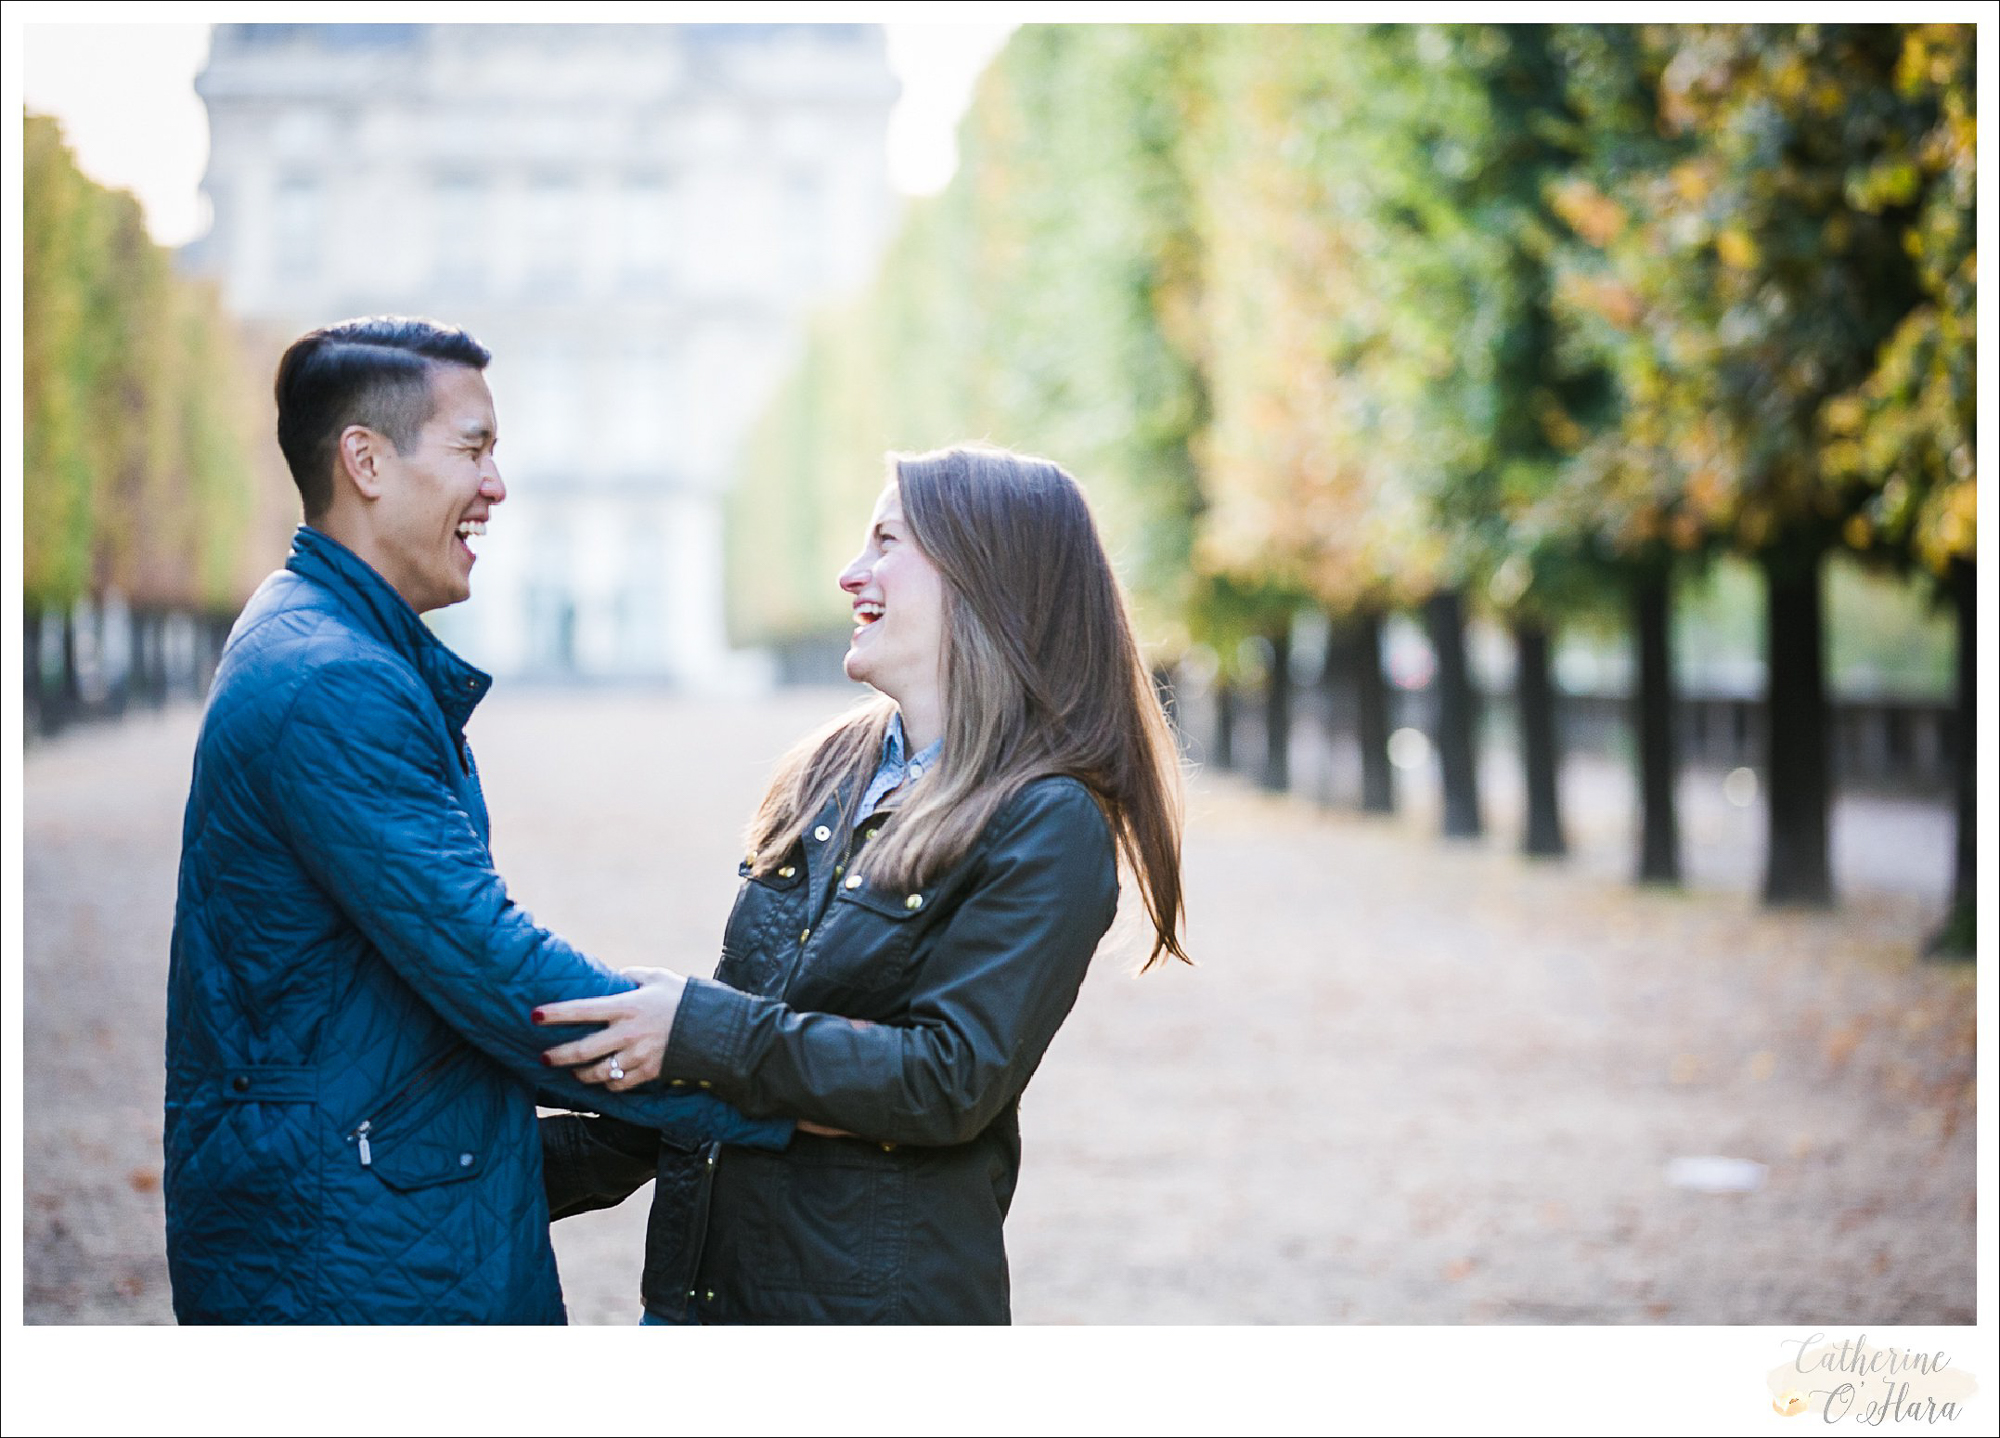 surprise proposal engagement photographer paris france-27.jpg